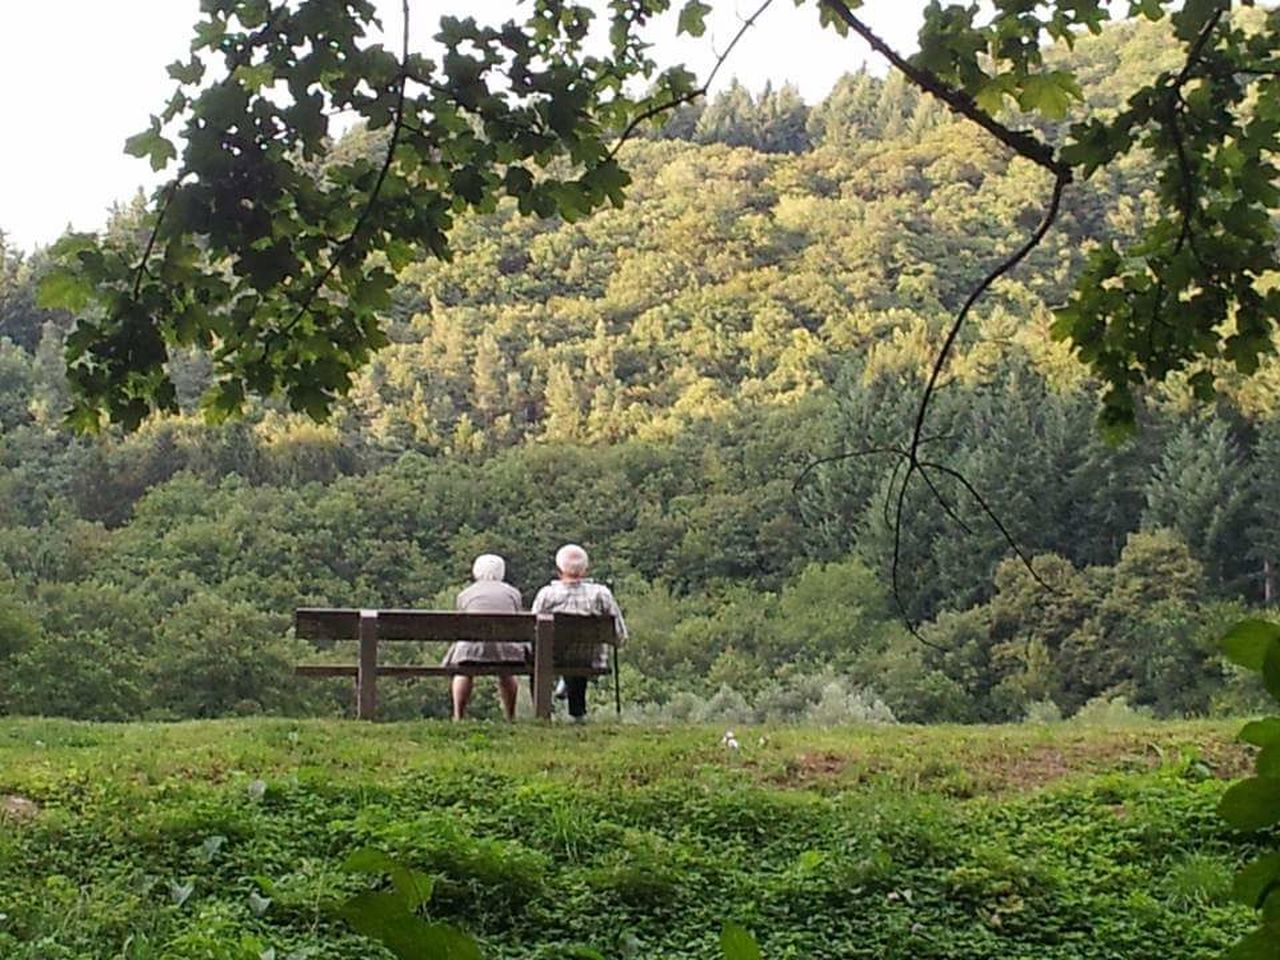 Lifestyles Two People Togetherness Nature Beauty In Nature Simple Living Green Color Tranquility Older Couple looking into the future Looking Back On Life green nature Outdoors Idyllic Forest Park Forest Walk Forest View Forest Photography Waiting... Sitting Outside Sitting In The Park Sitting On A Bench Old Age, Fragile, Vulnerable Olden Days Street Photography Empty Places Beauty In Nature Relaxation